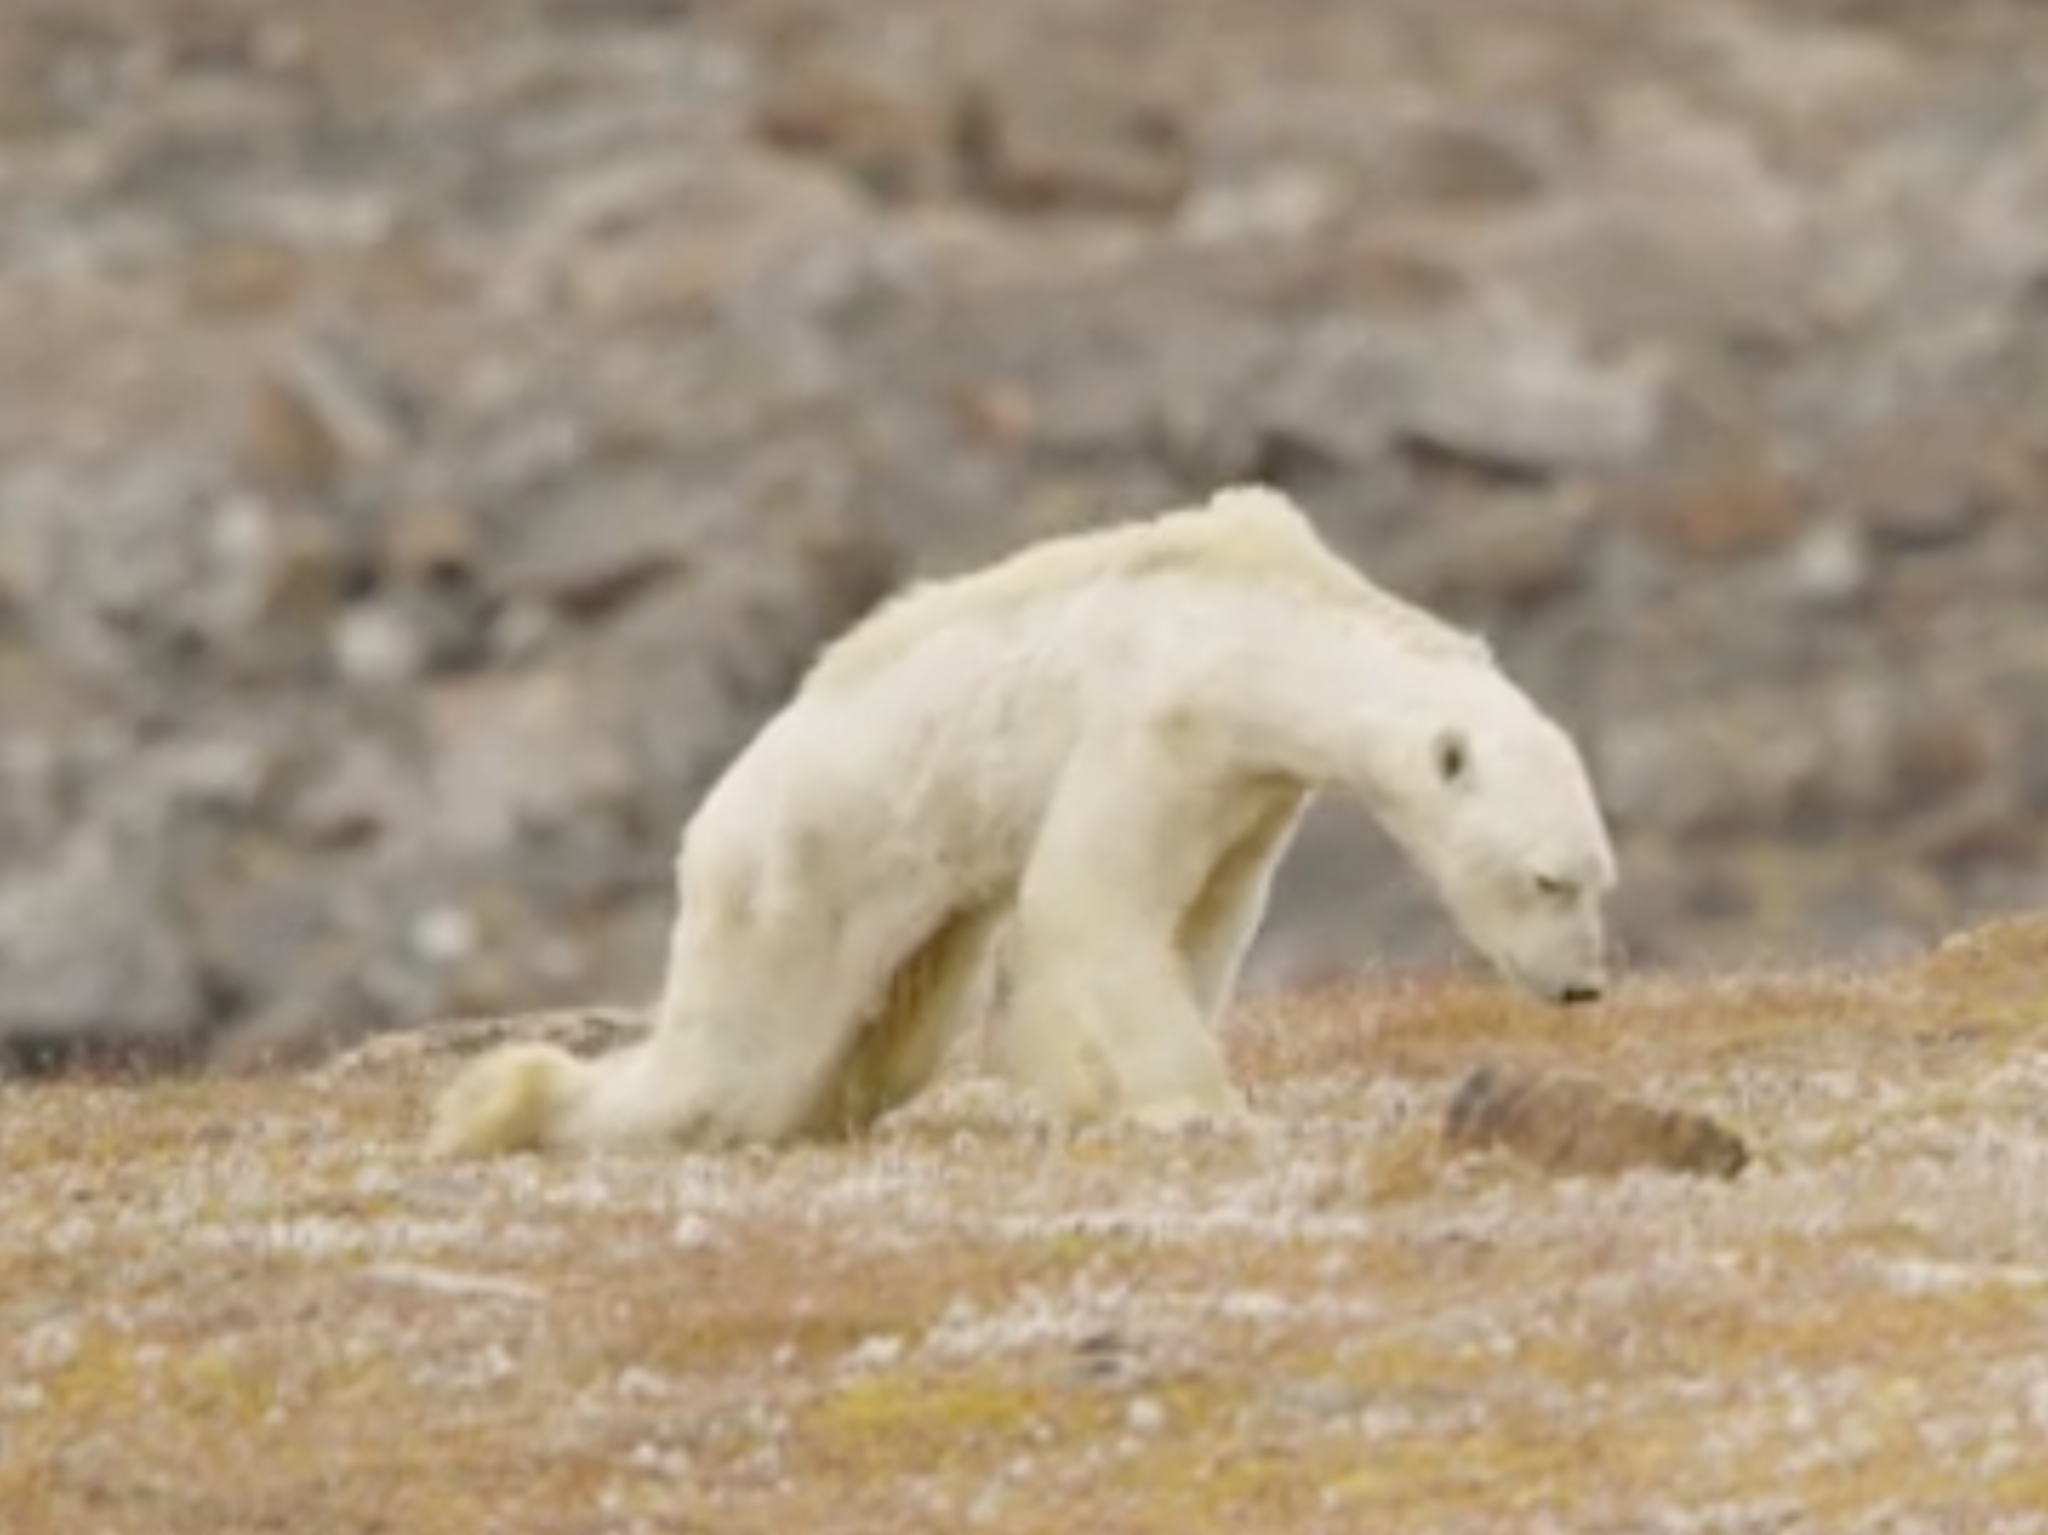 Film crew in tears over footage of starving polar bear